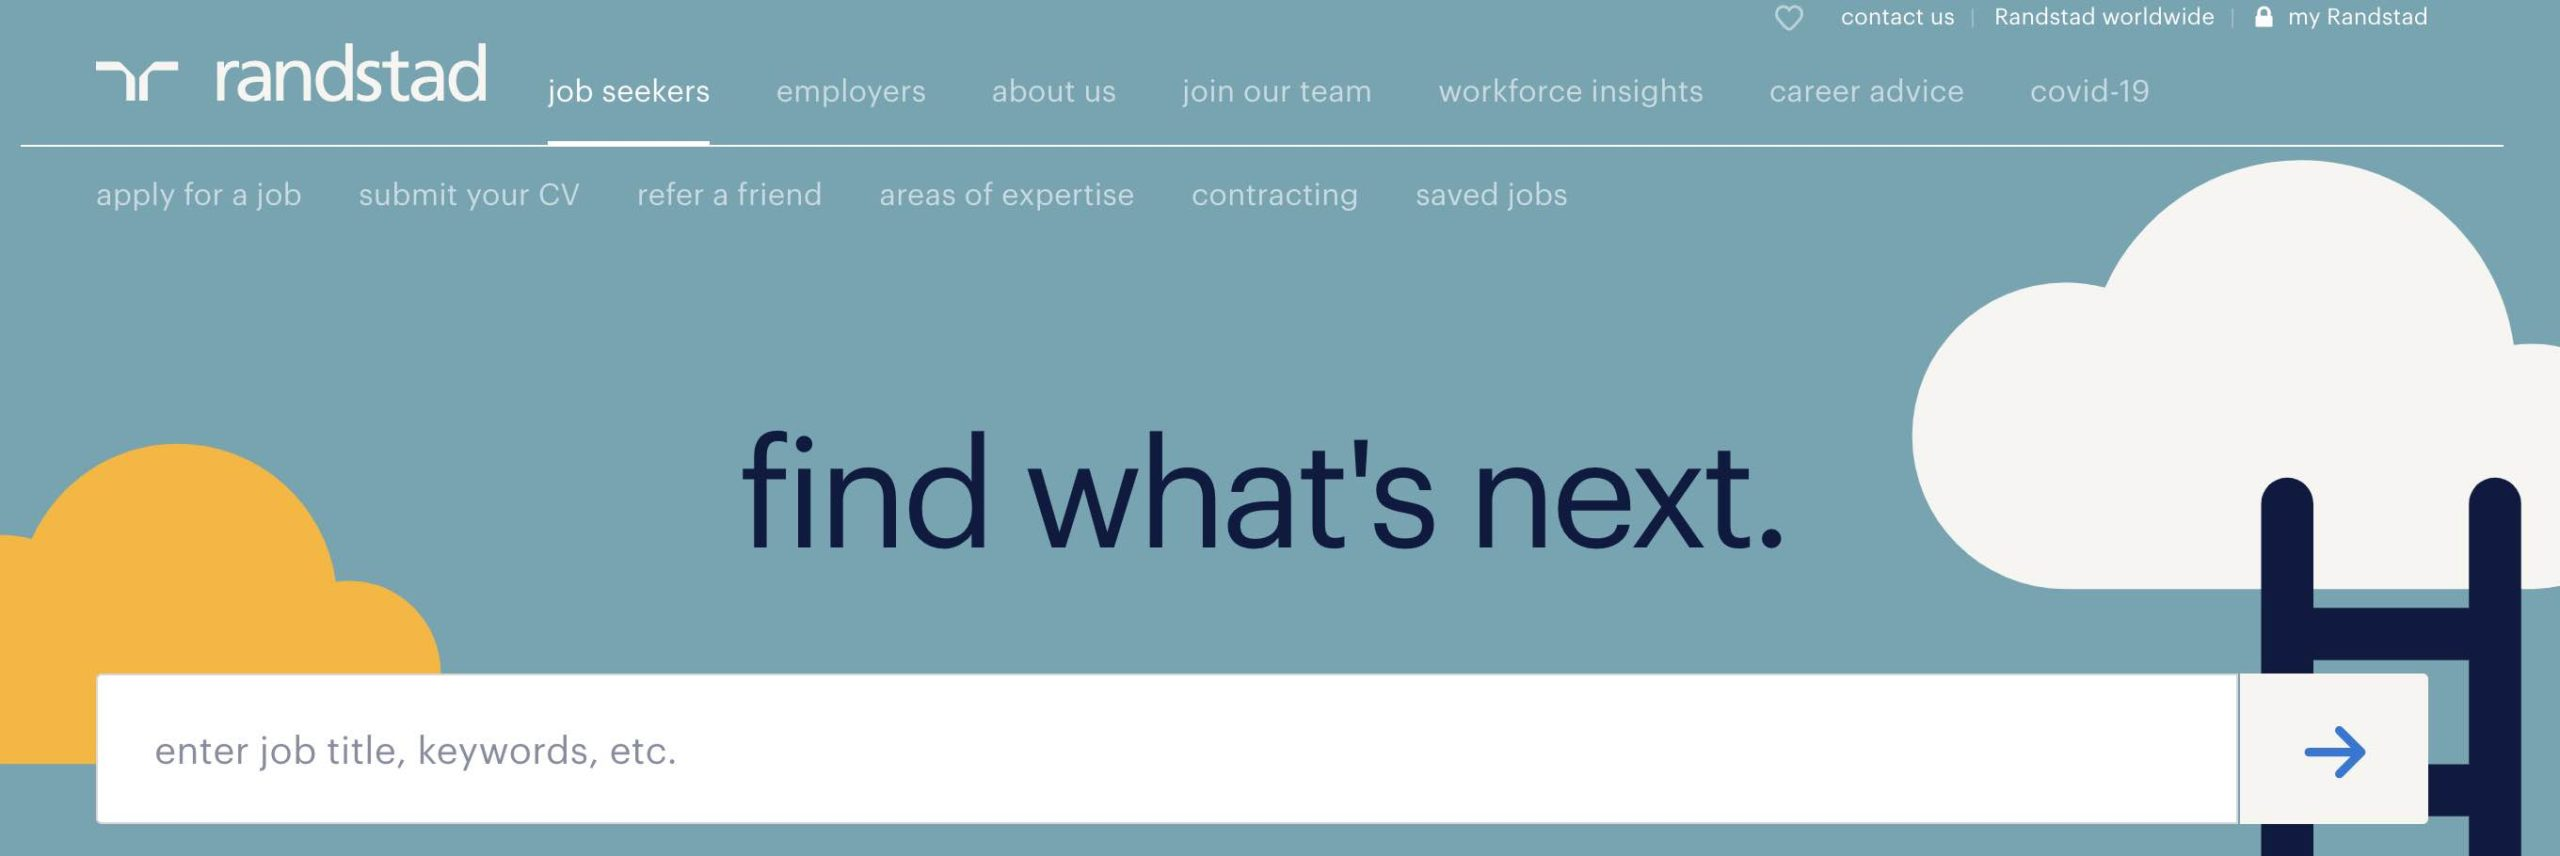 Randstad Singapore - Recruitment agency and executive search firm